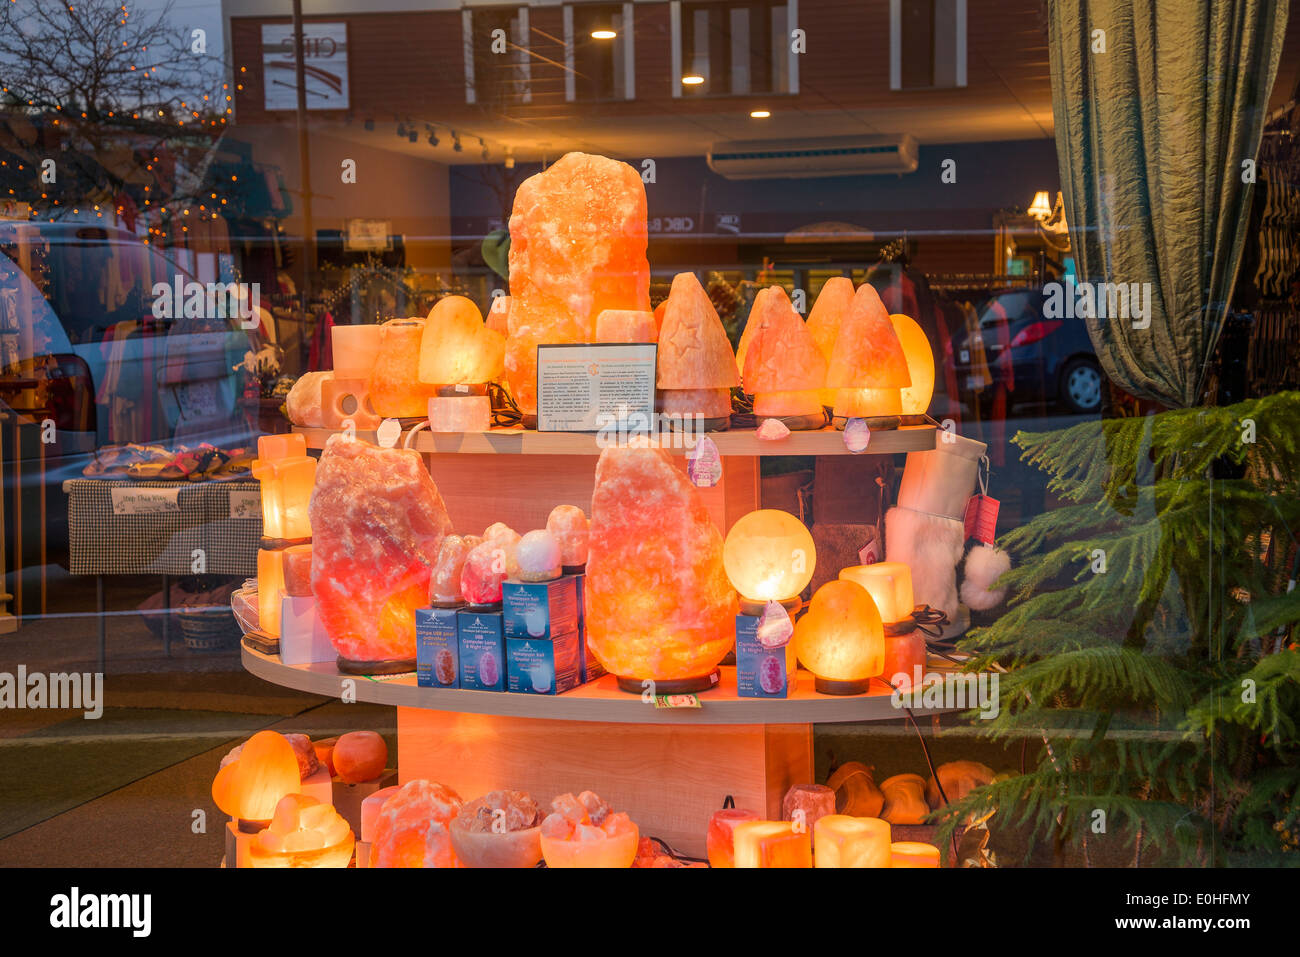 Window display of Himalayan salt crystal lamps, Ladysmith, British Columbia, Canada - Stock Image